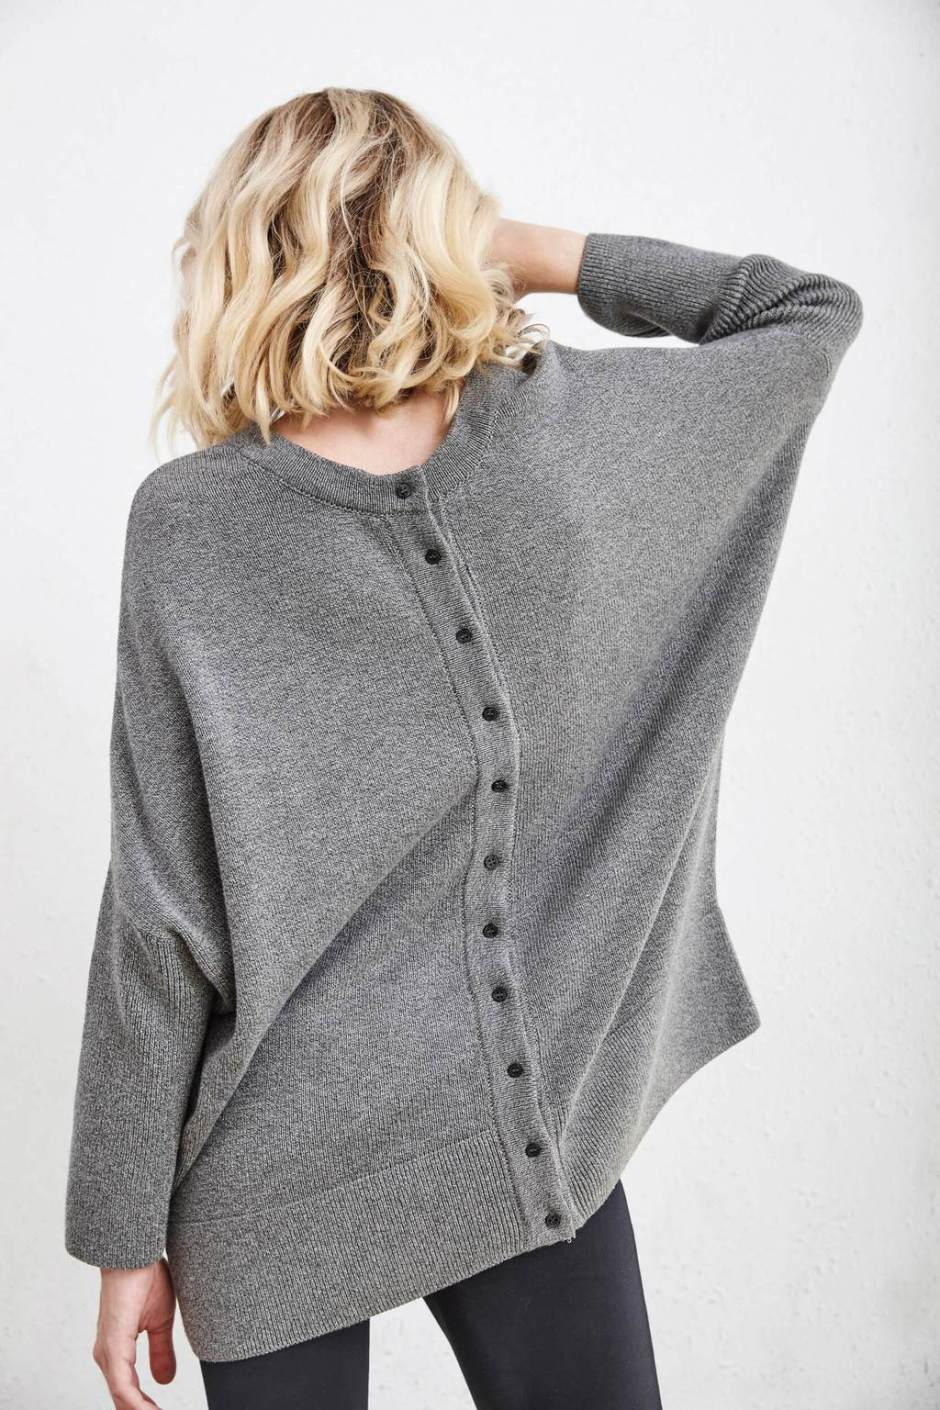 213babdce0dc8f It's more of a 3/4 sleeve, even though the Vetta product photos make it  look like a full length sleeve. (Also worth noting that I do have fairly  long arms ...